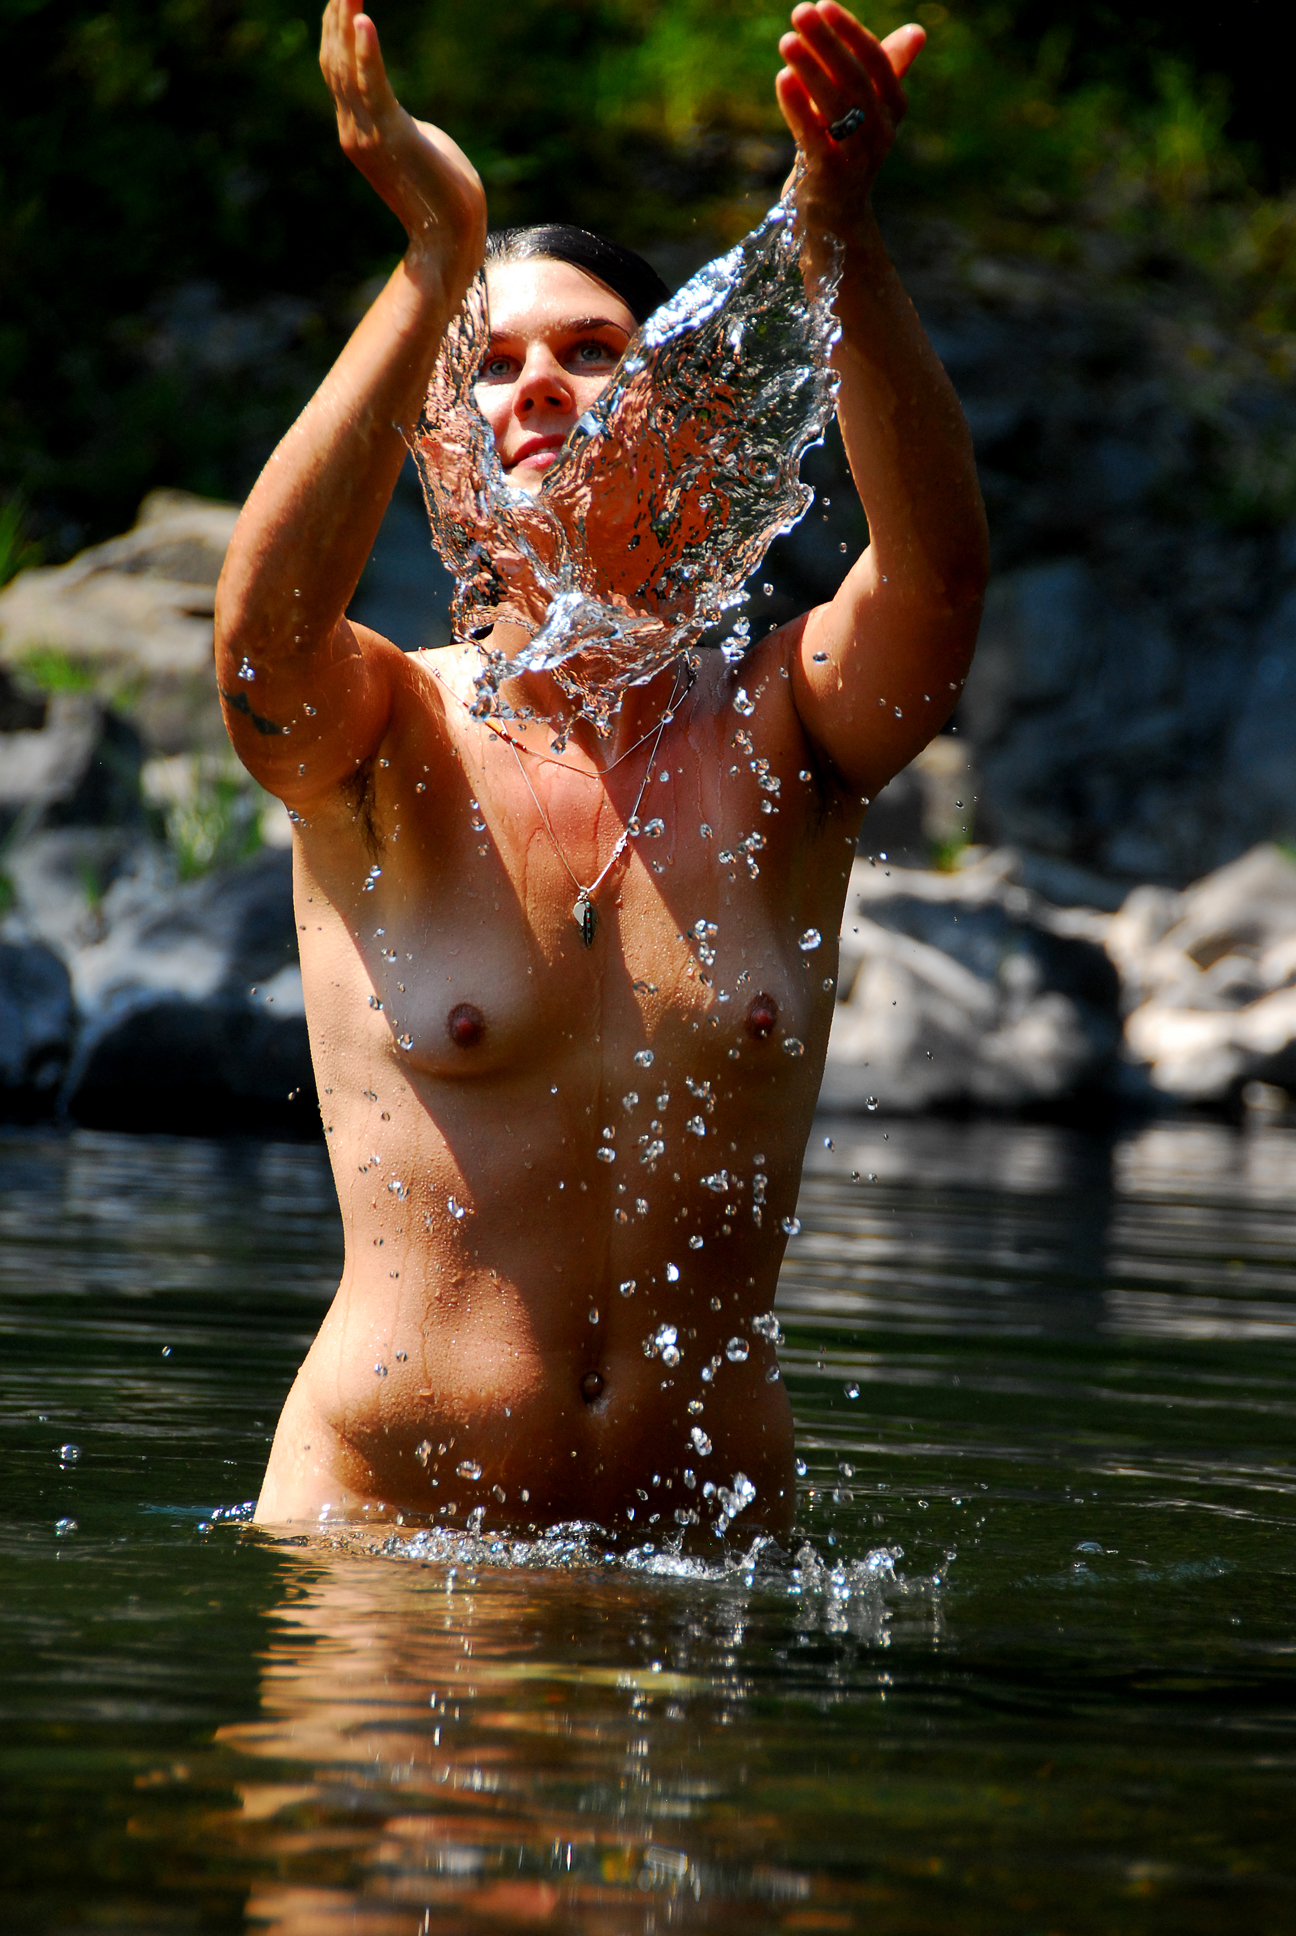 Flickr nudist naked nudist pictures